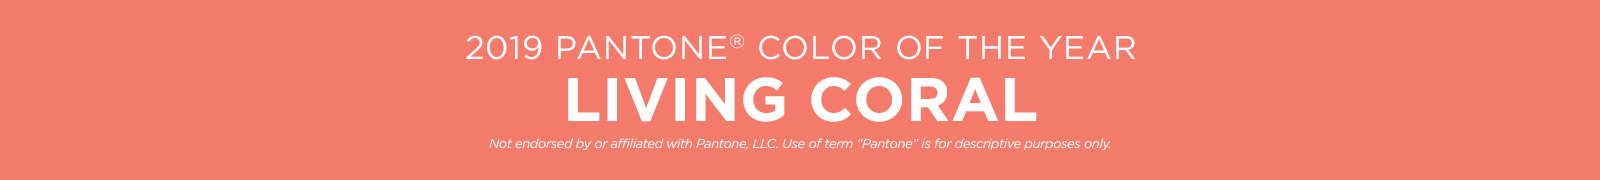 pantone color of the year cat banner